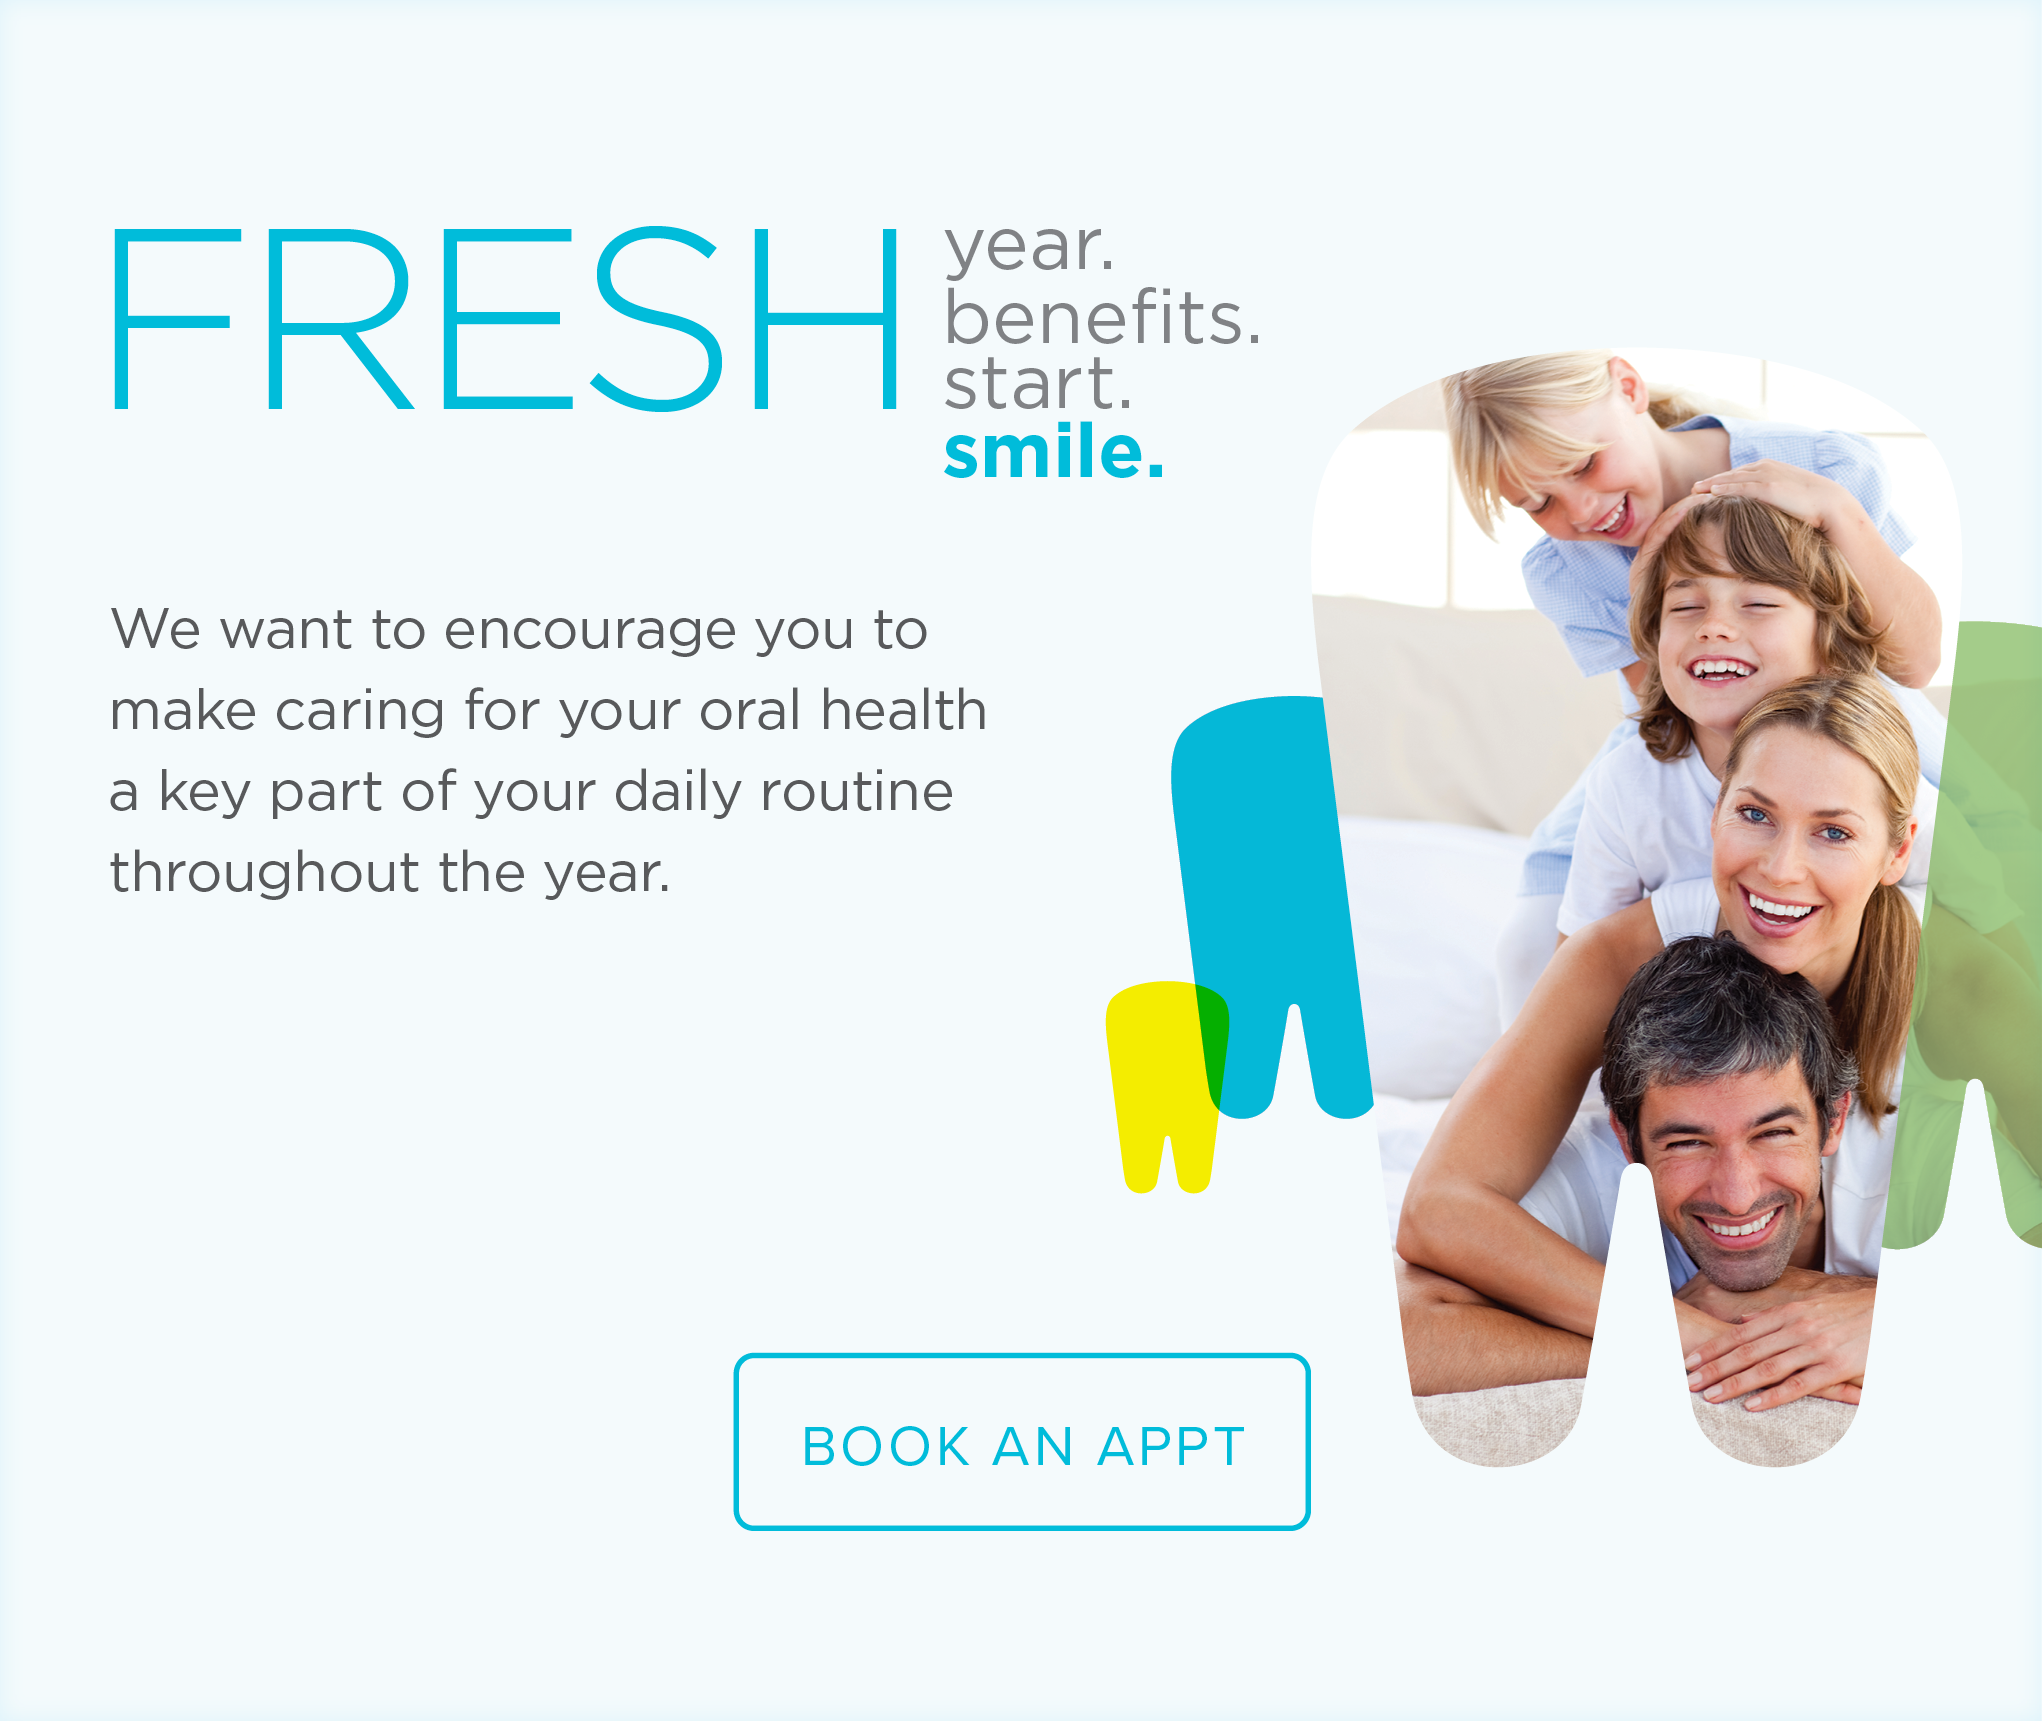 Petaluma Modern Dentistry - Make the Most of Your Benefits